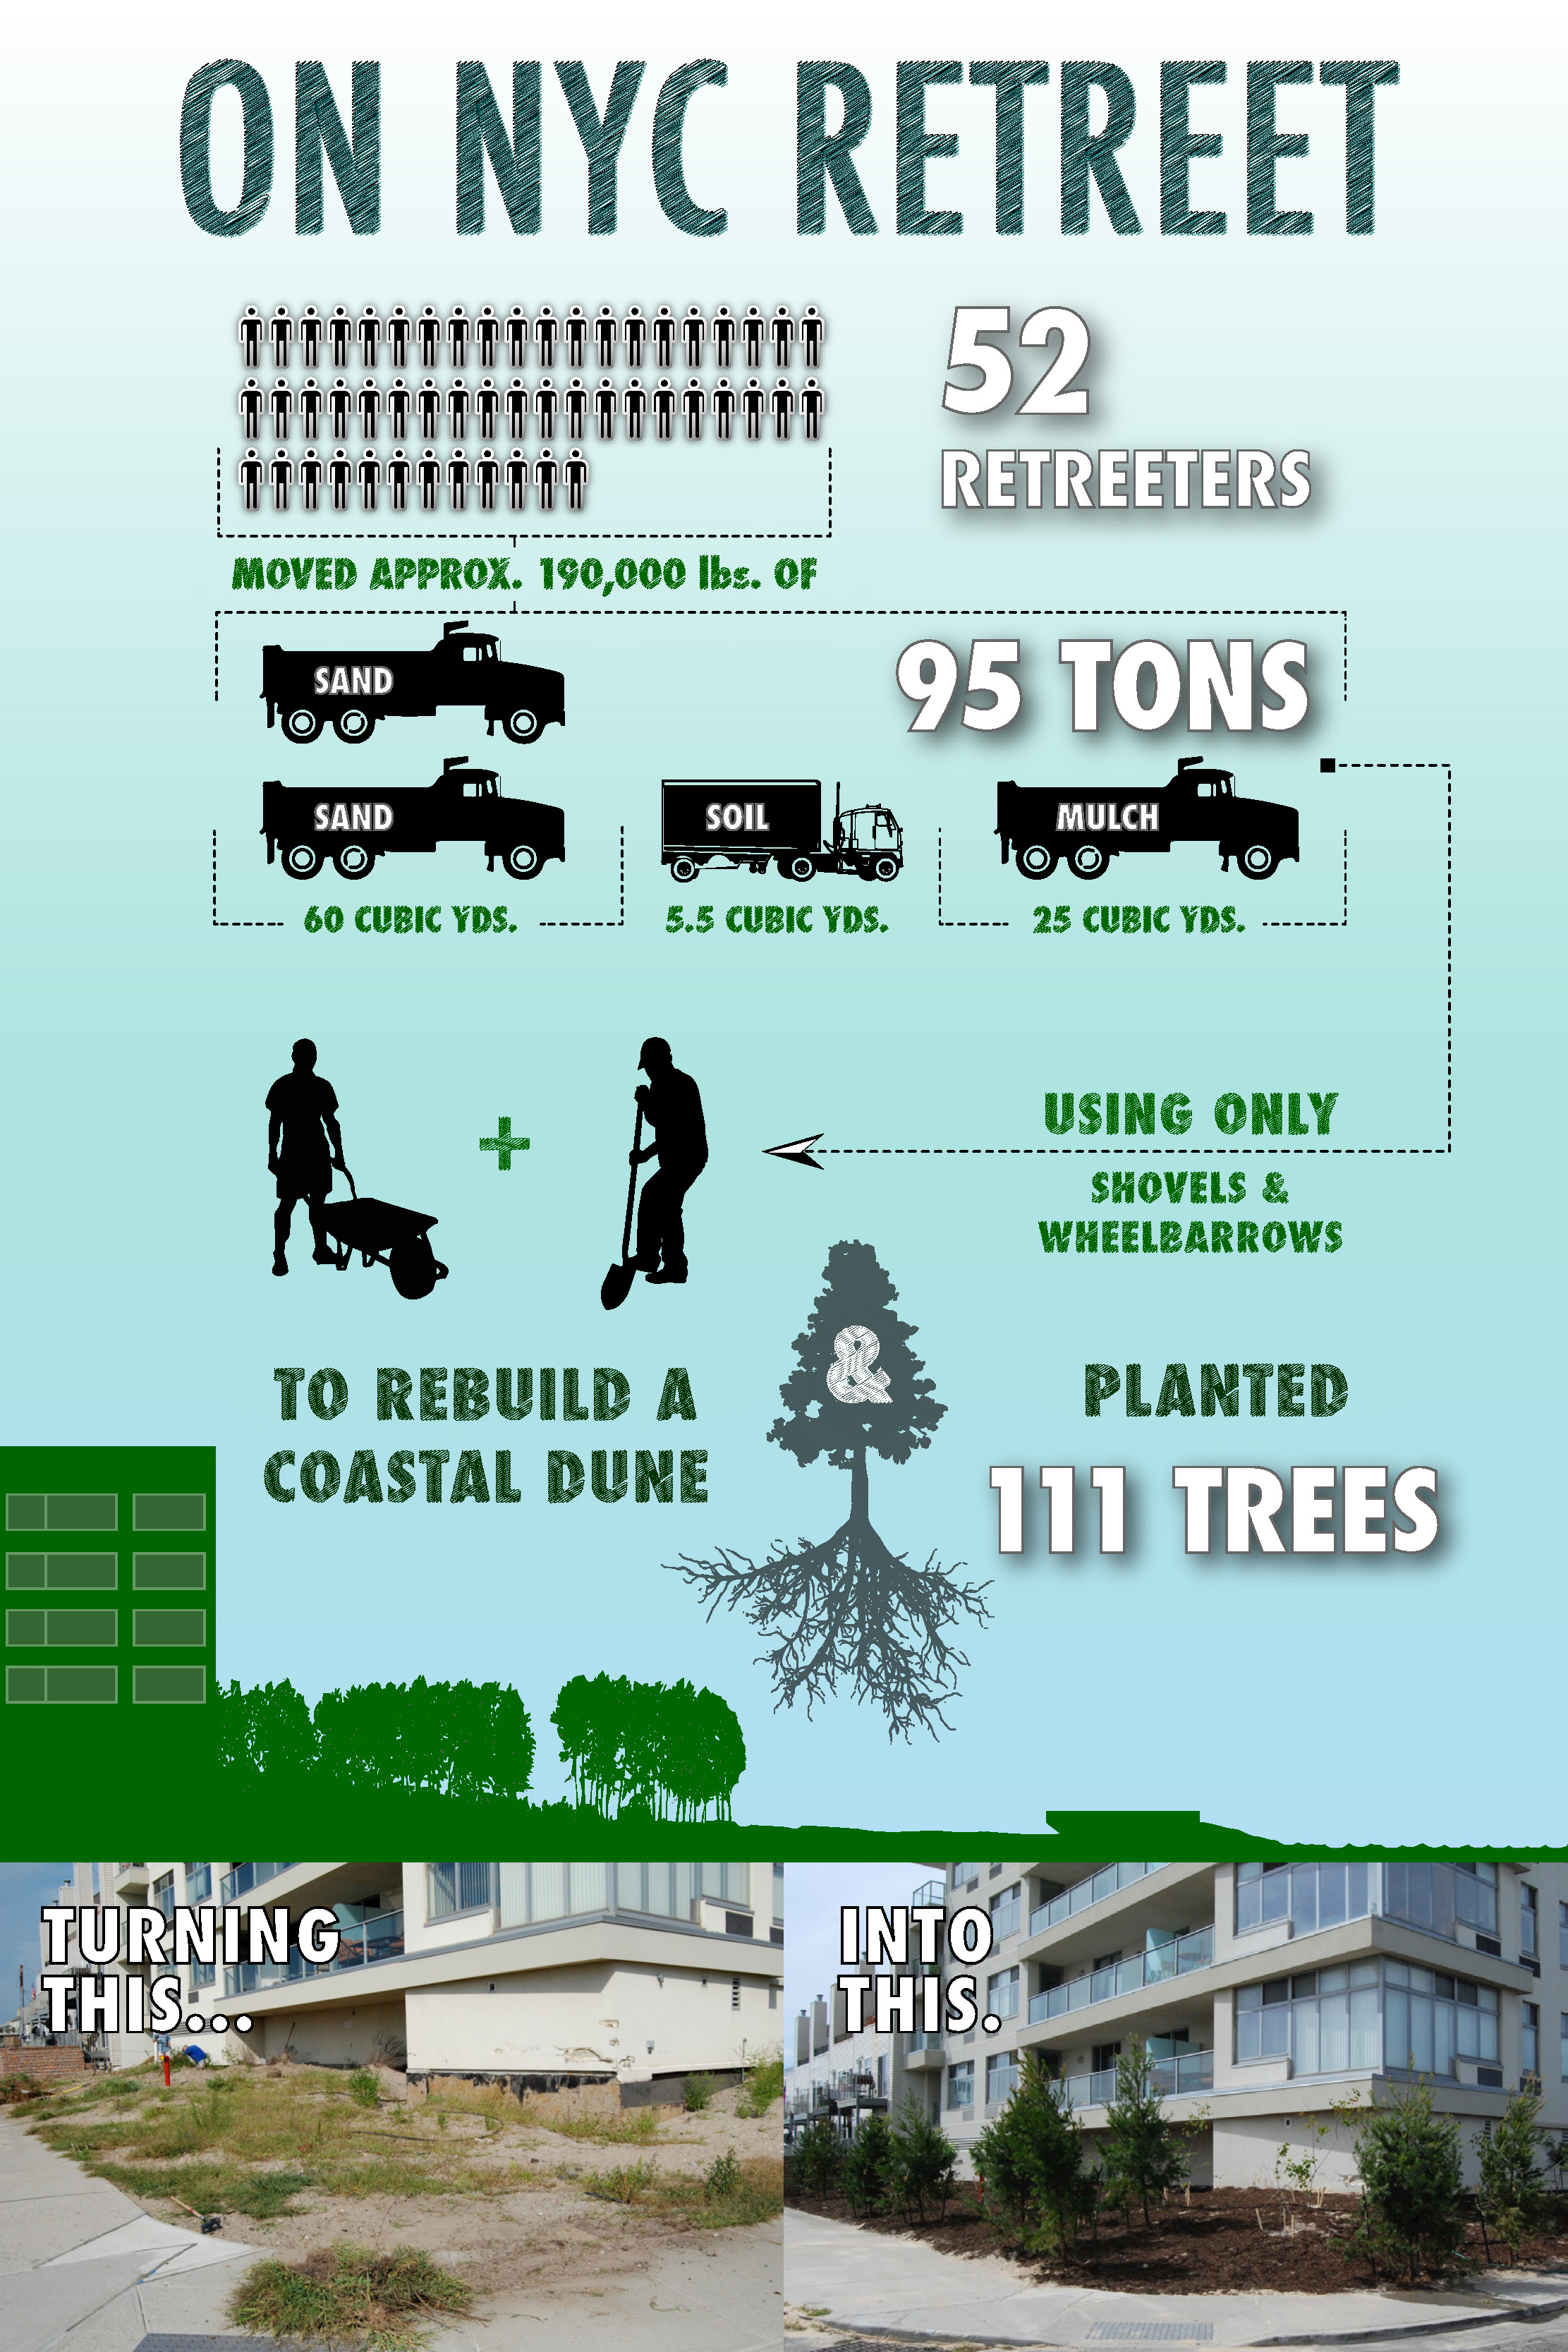 NYC Retreet_Infographic.jpg